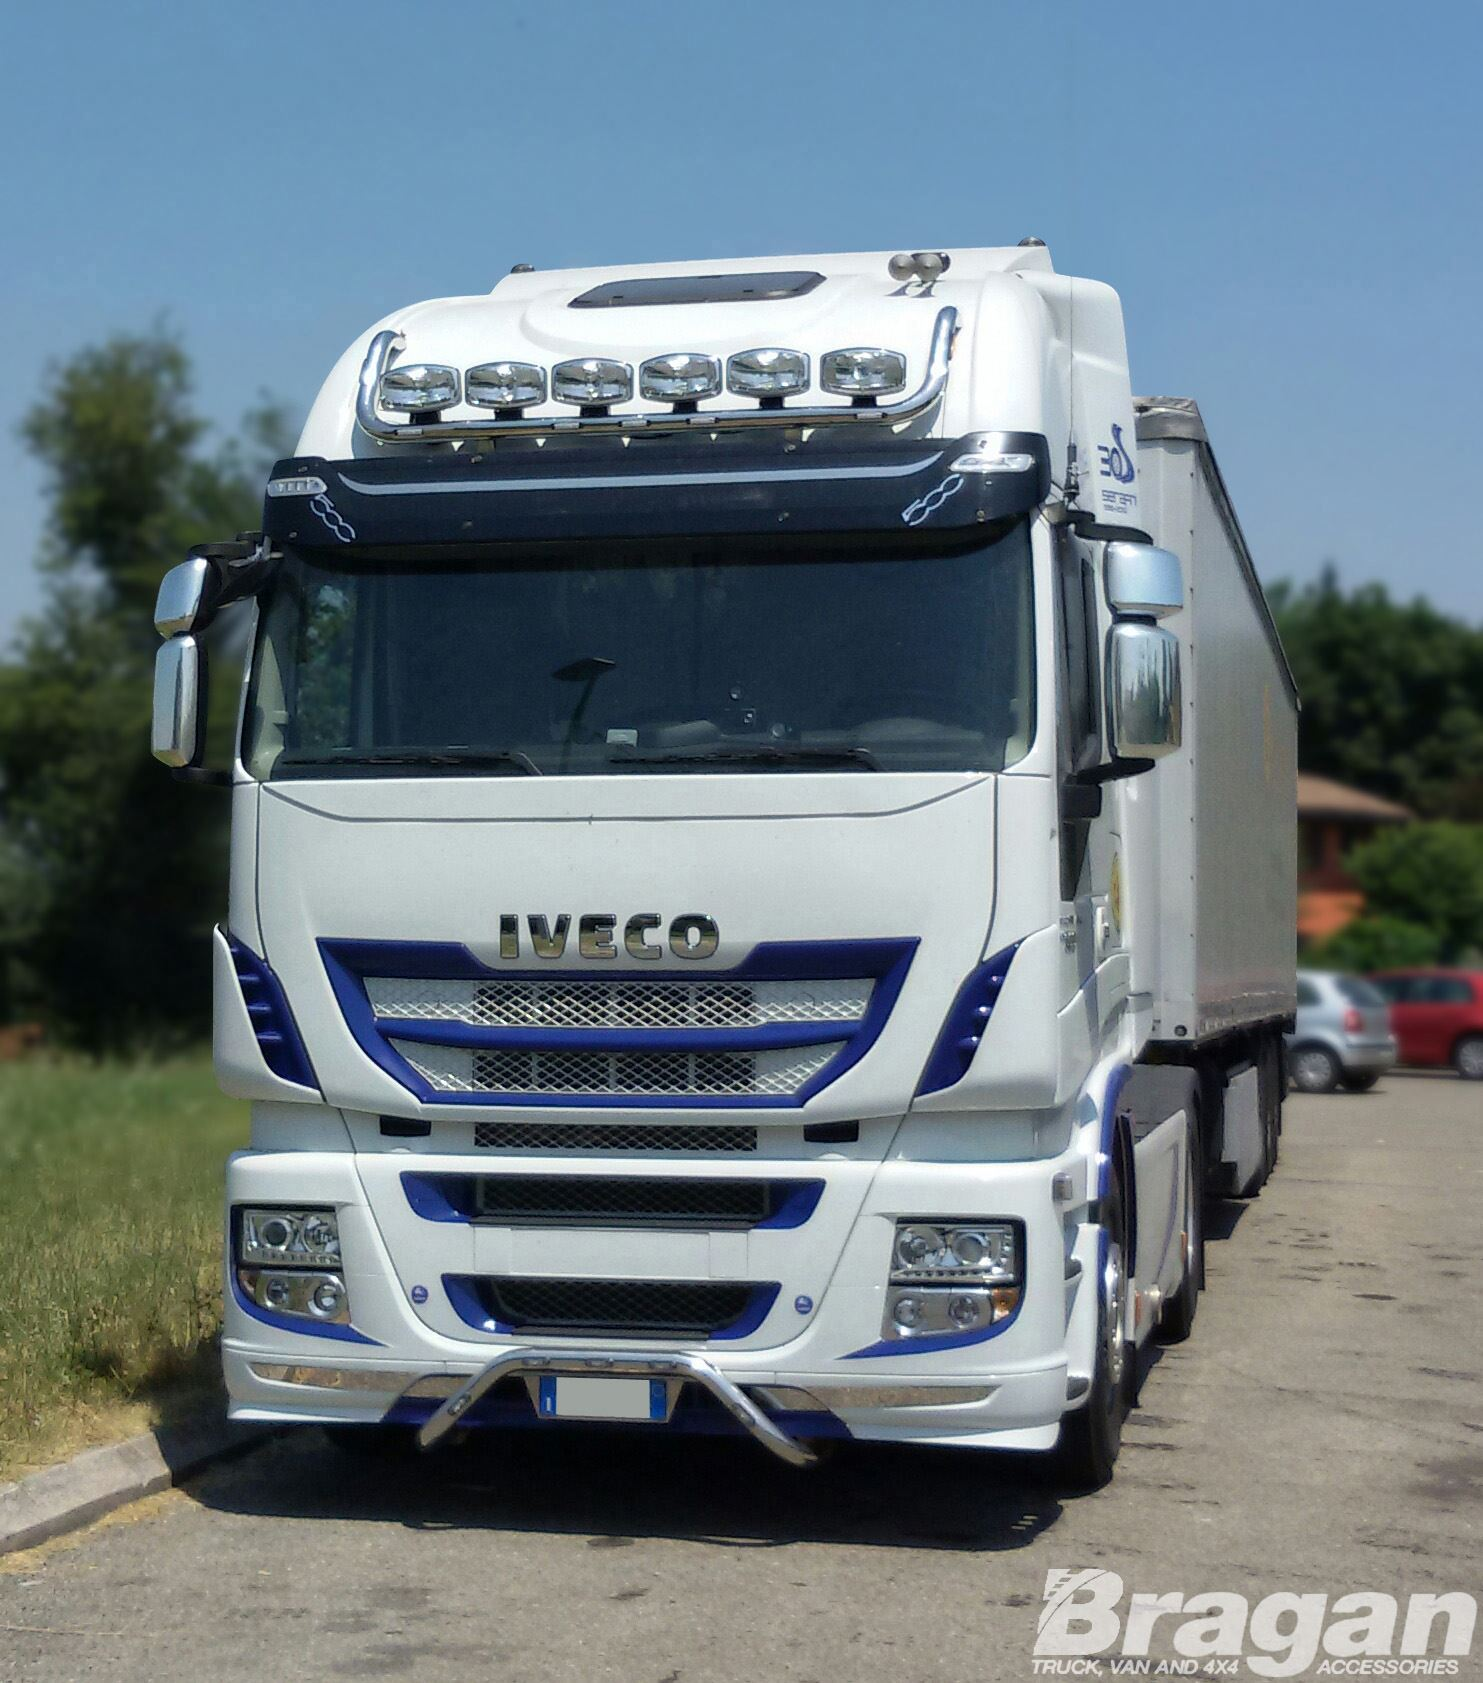 iveco stralis active space time stainless steel front top roof light bar picclick uk. Black Bedroom Furniture Sets. Home Design Ideas